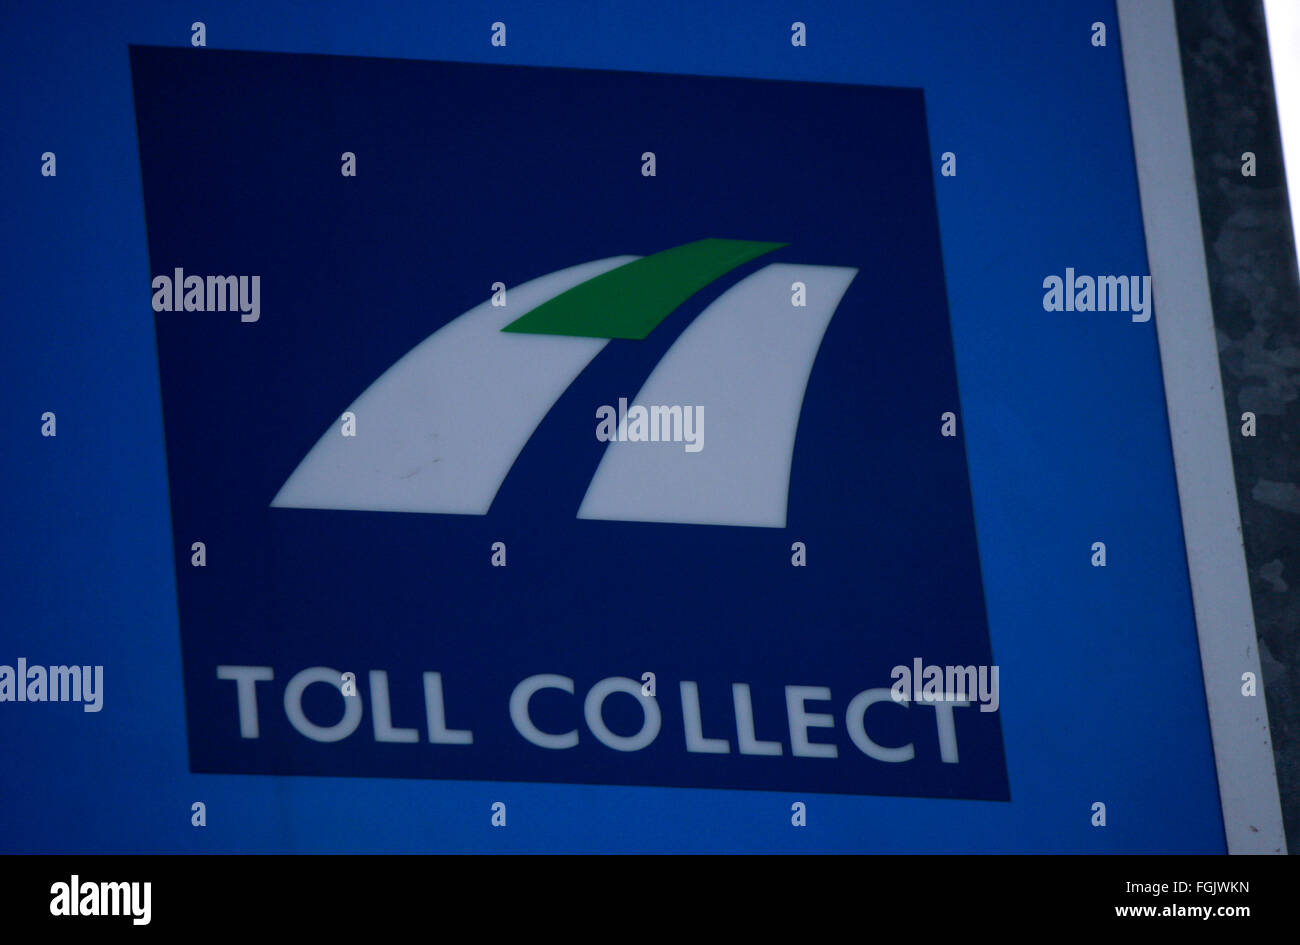 Markenname: 'Toll Collect', Berlin. - Stock Image